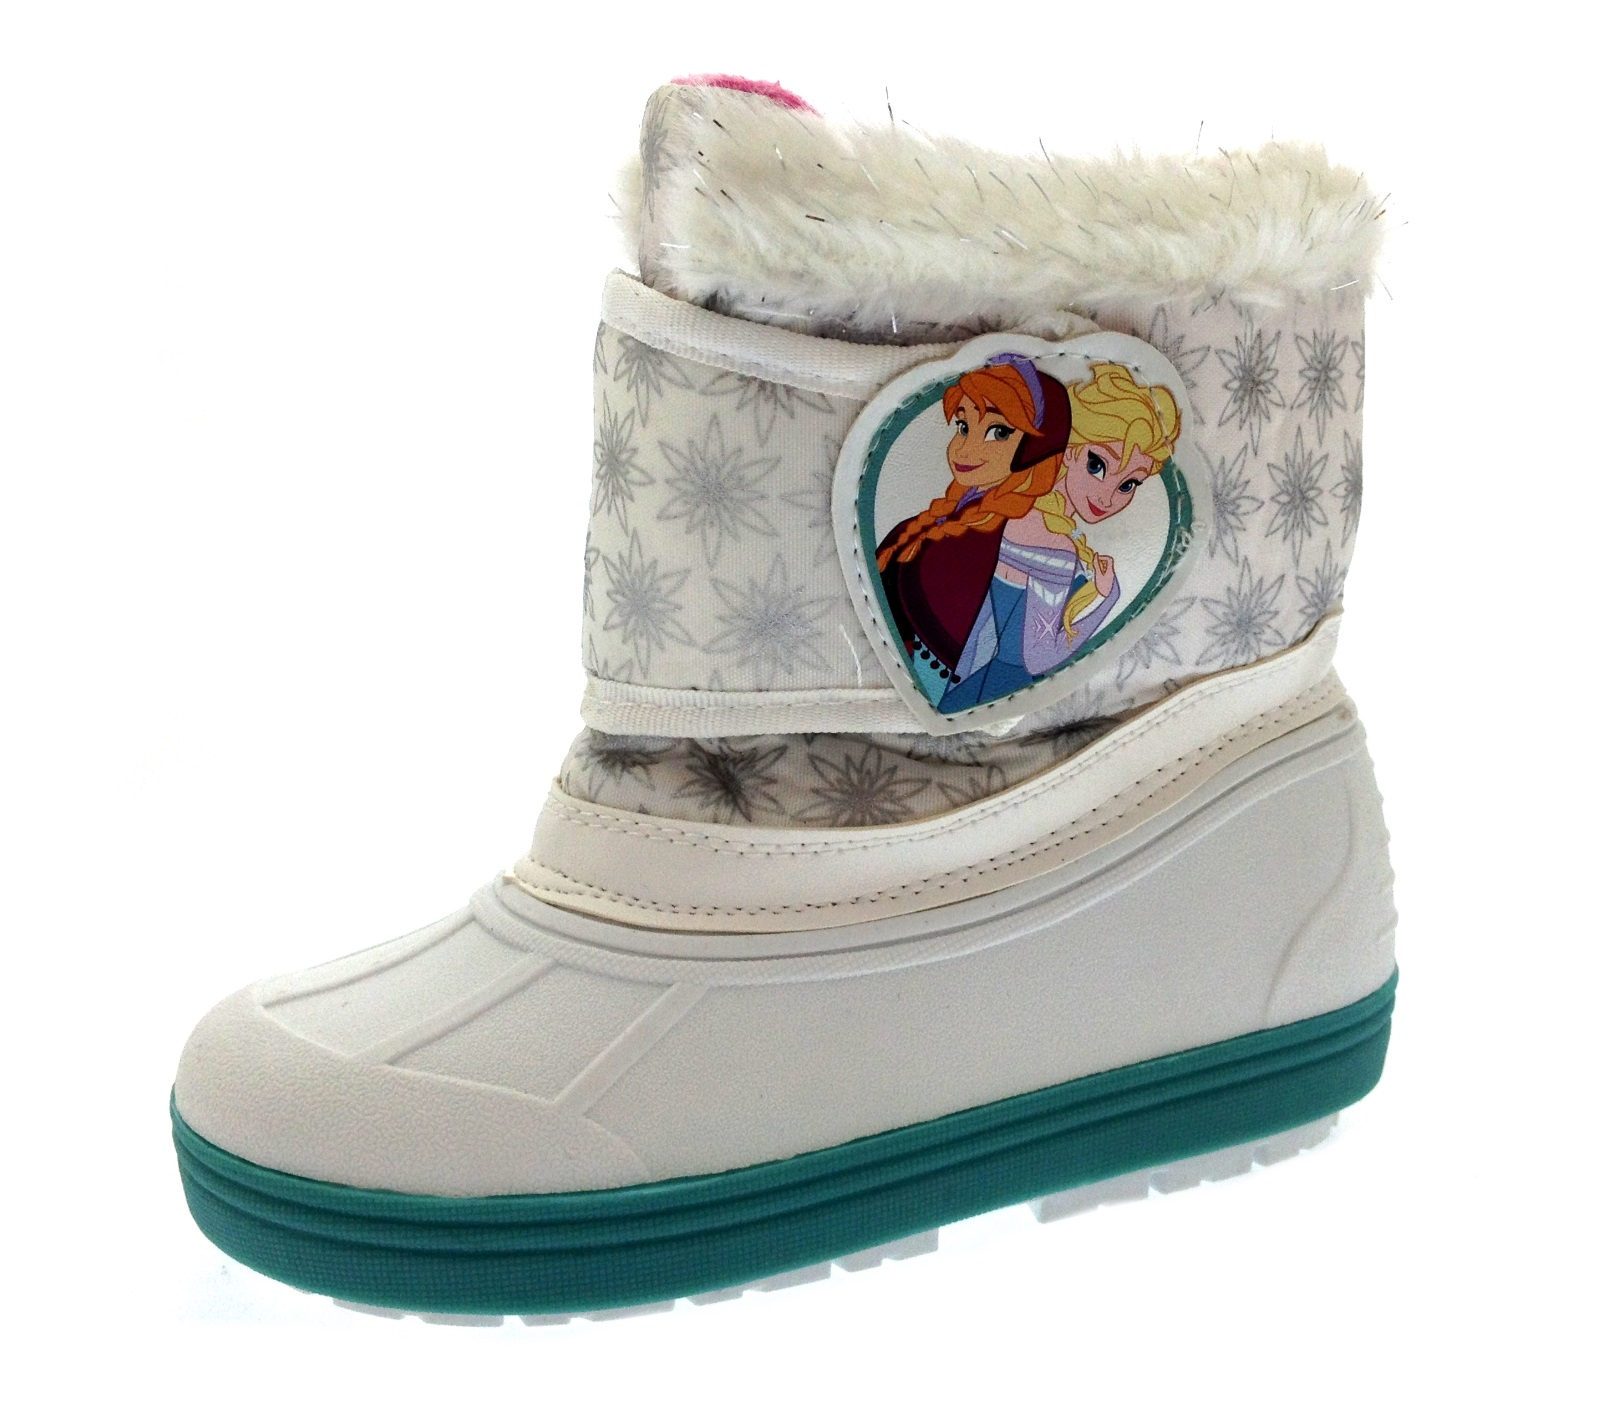 Polo Snow Boots For Kids Size 5 | Santa Barbara Institute for